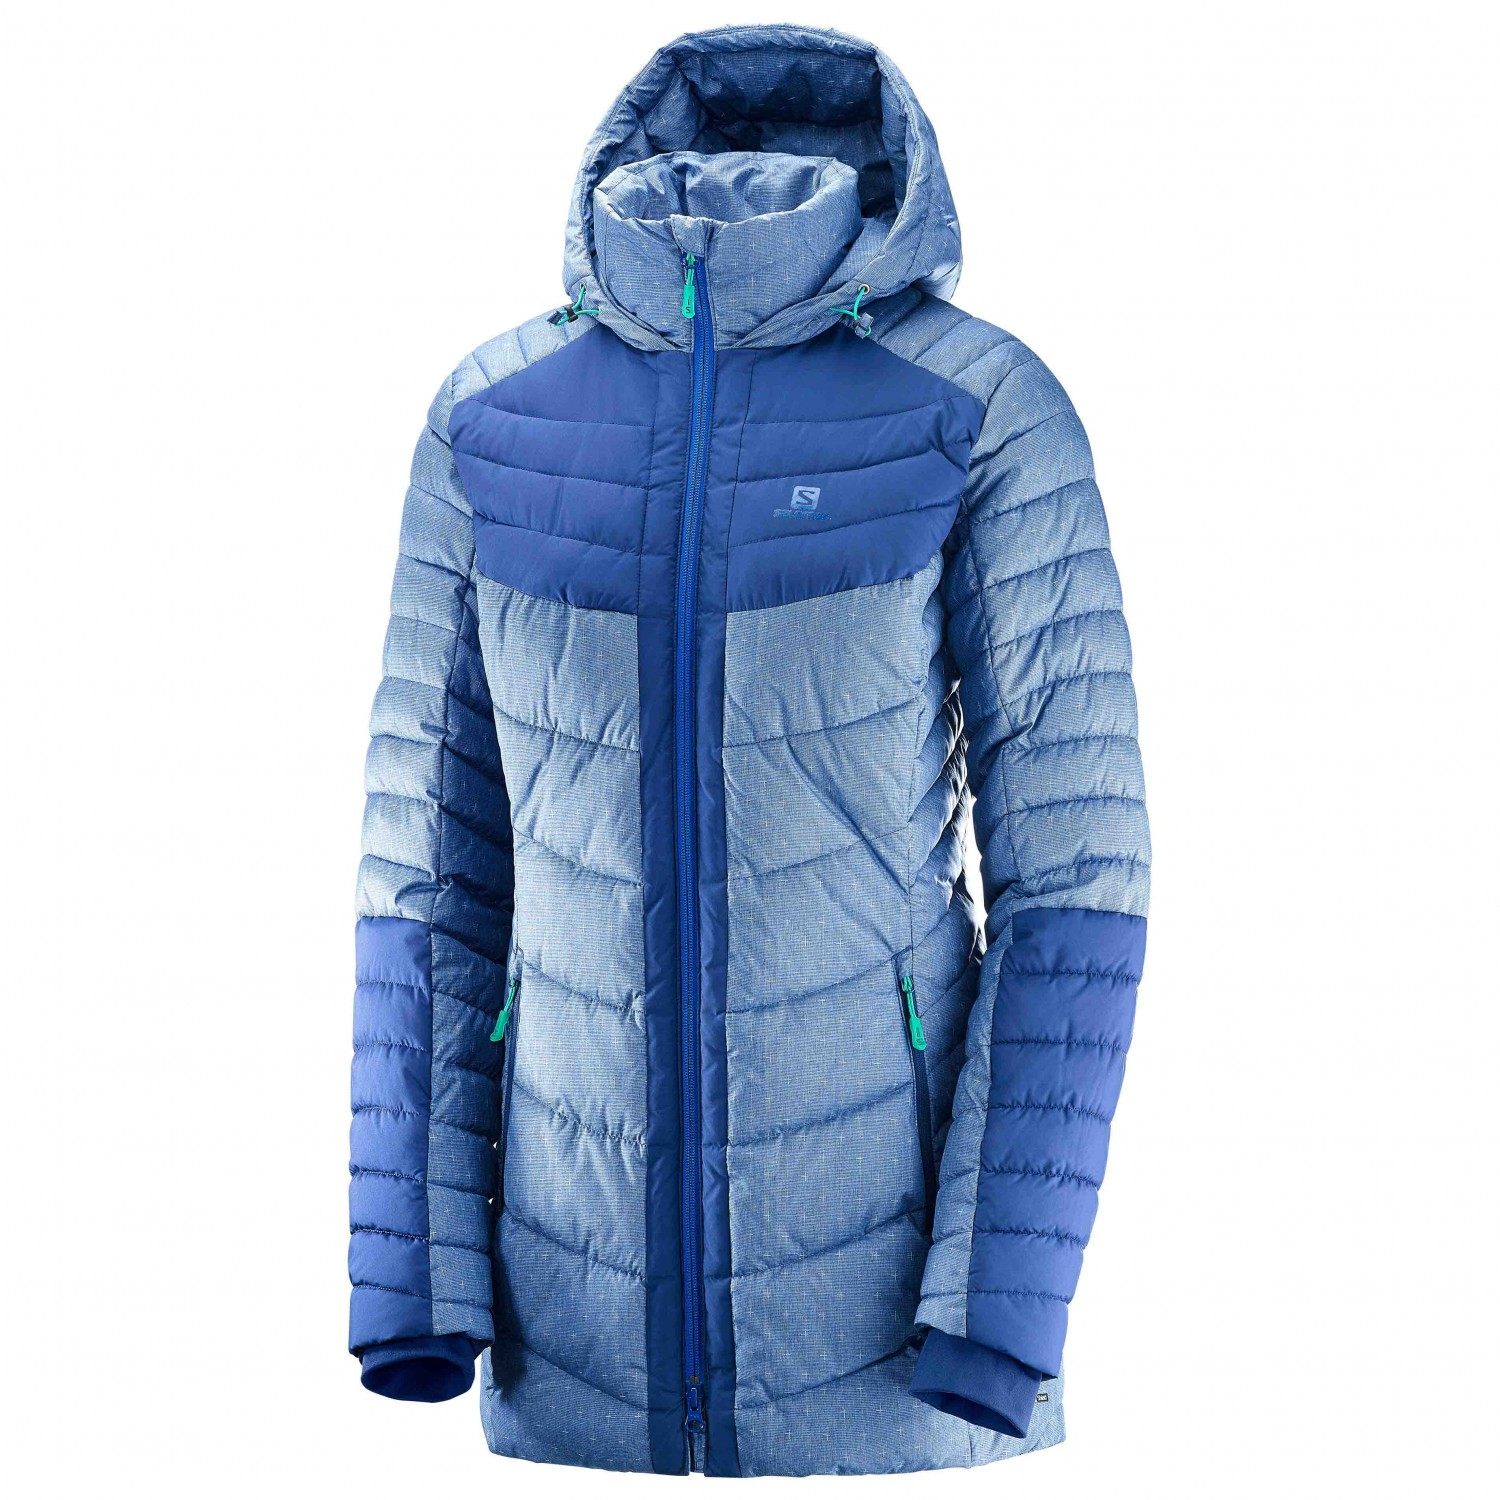 Salomon Stormfeel Jacket Coat Women's | Buy online